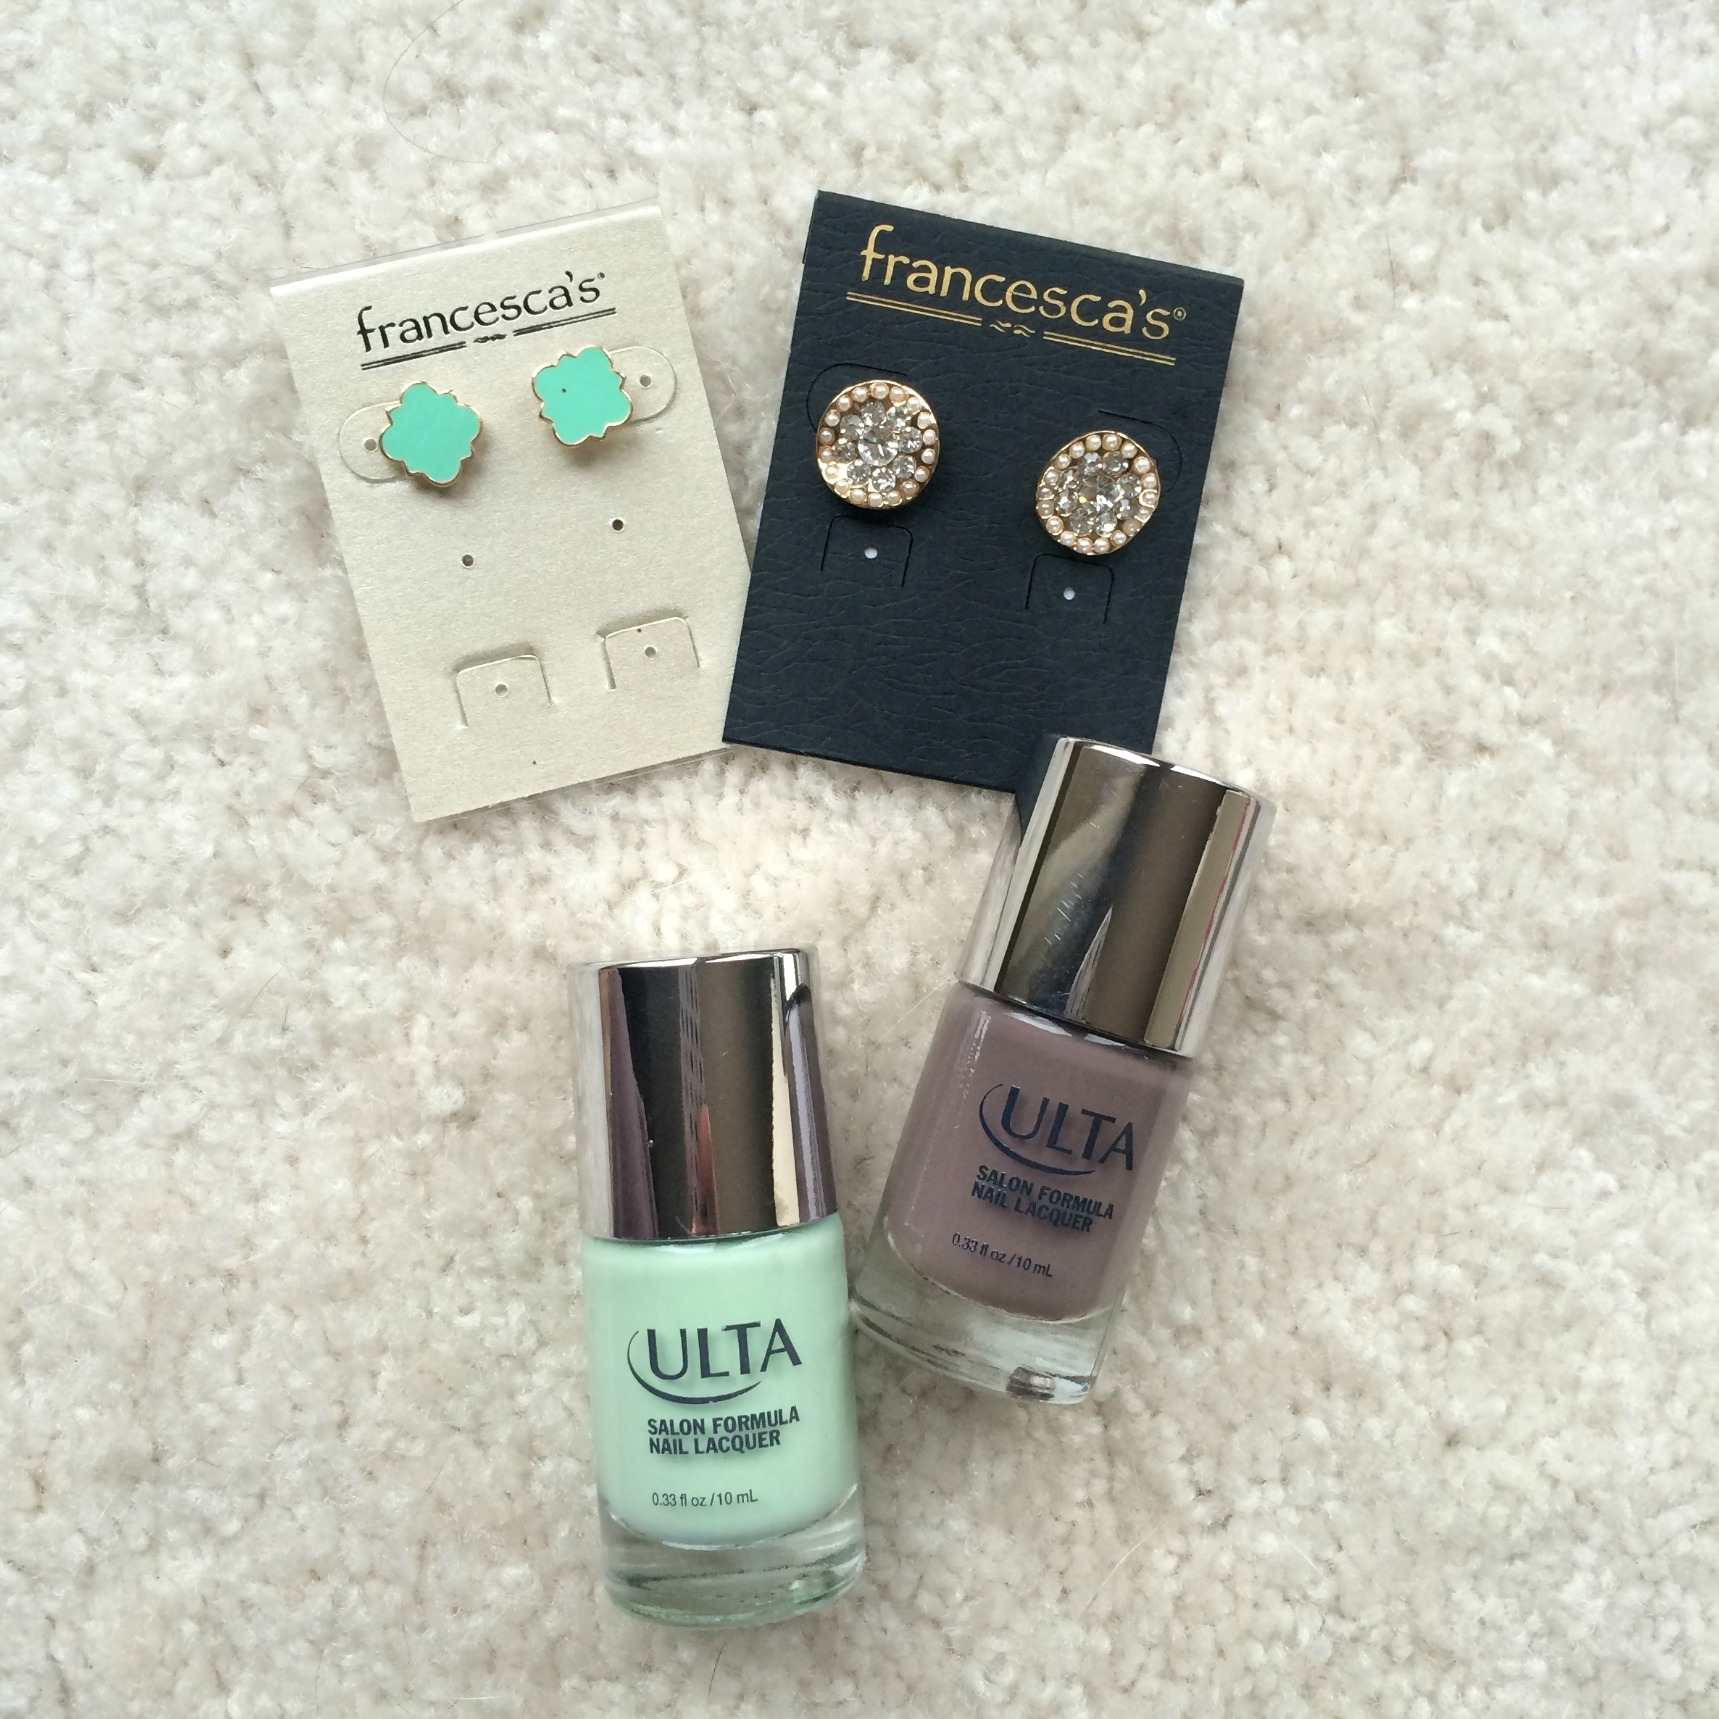 francesca's earrings and ulta nailpolish